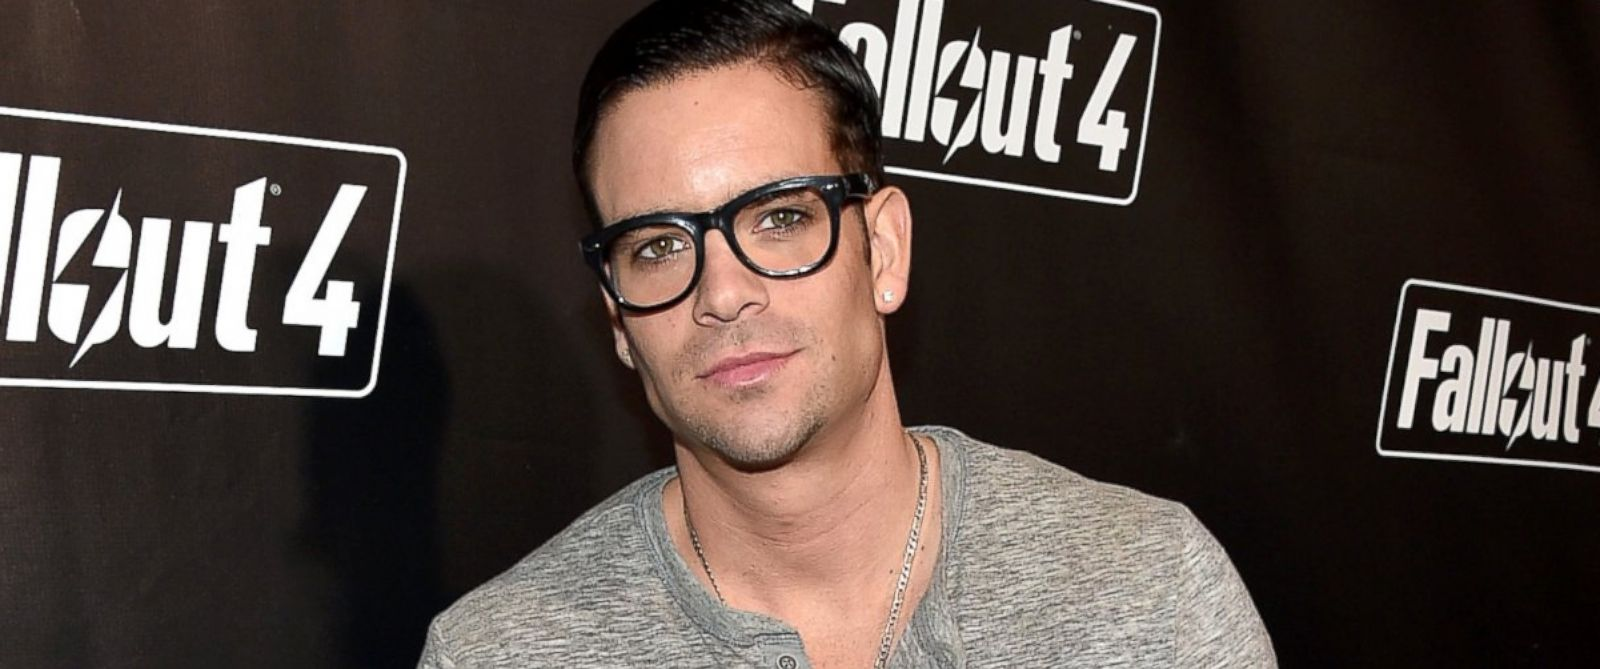 PHOTO: Mark Salling attends the Fallout 4 video game launch event in downtown Los Angeles, Nov. 5, 2015.